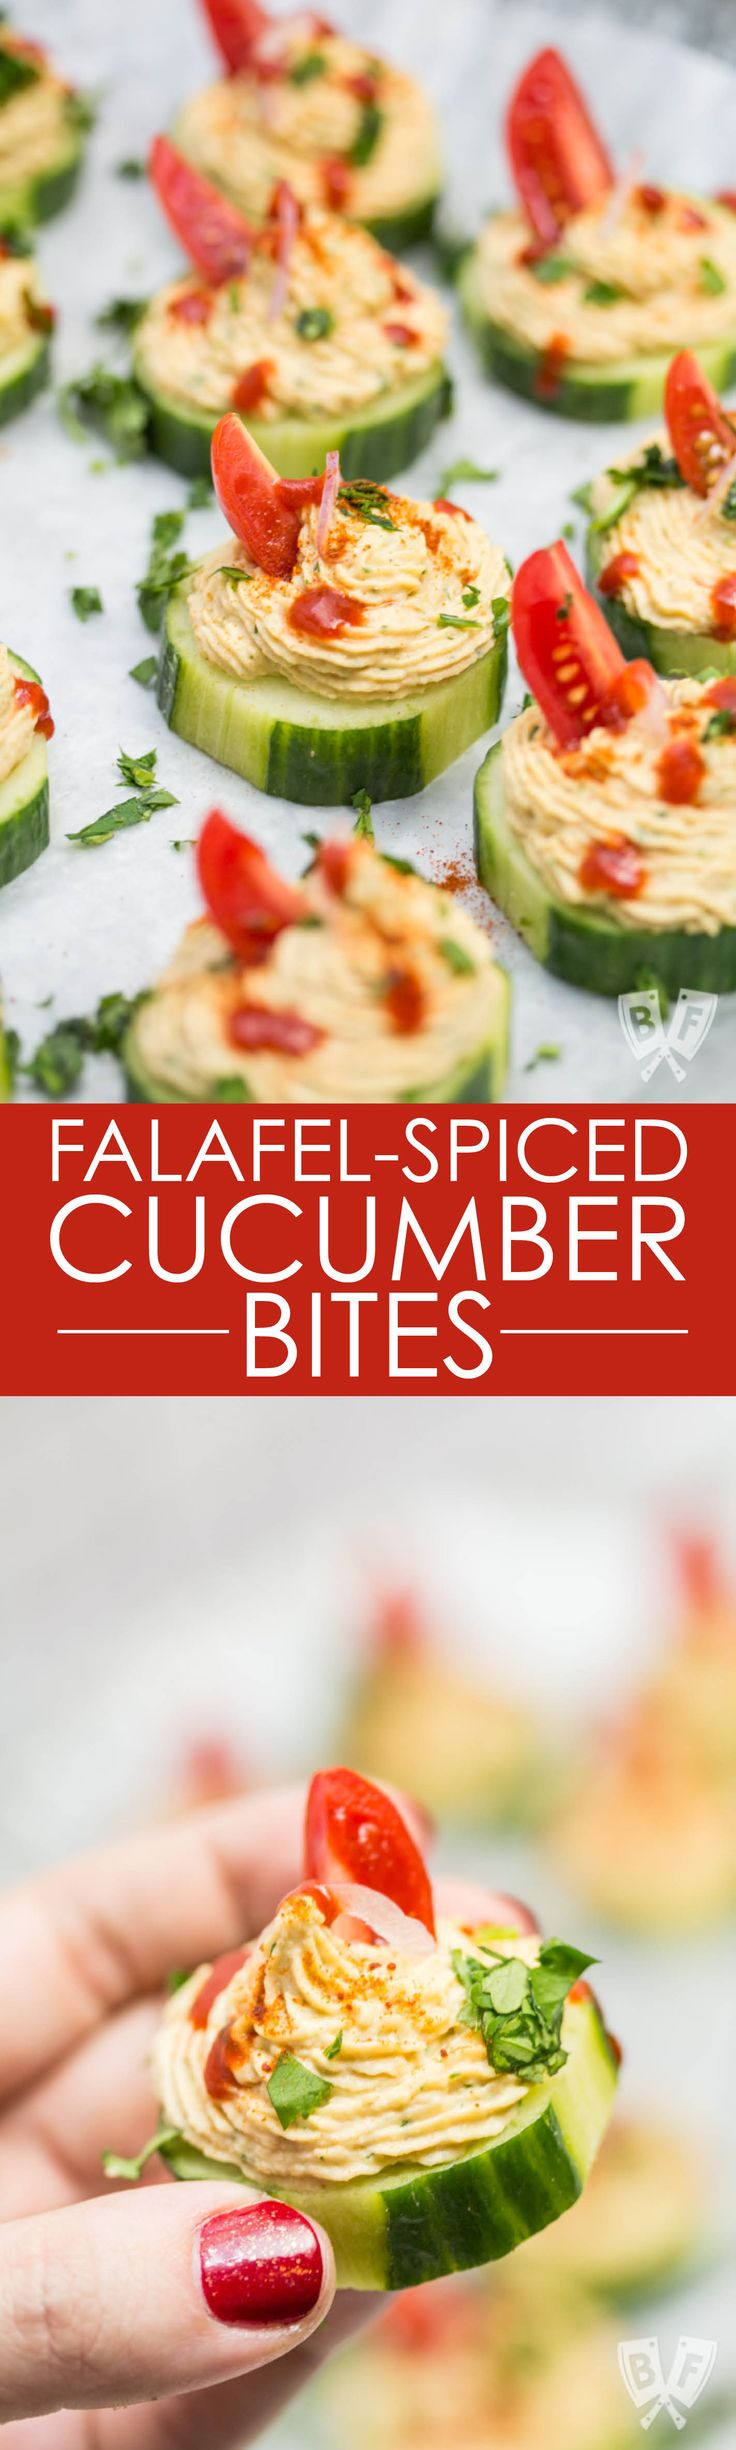 These quick & easy cucumber bites are a healthy party appetizer recipe with major Middle Eastern flair! They make a great addition to any dinner, cocktail party, or game day appetizer spread! Falafel-Spiced Cucumber Bites #partyappetizer #gamedayfood #healthysnacks #ad #StonyfieldBlogger